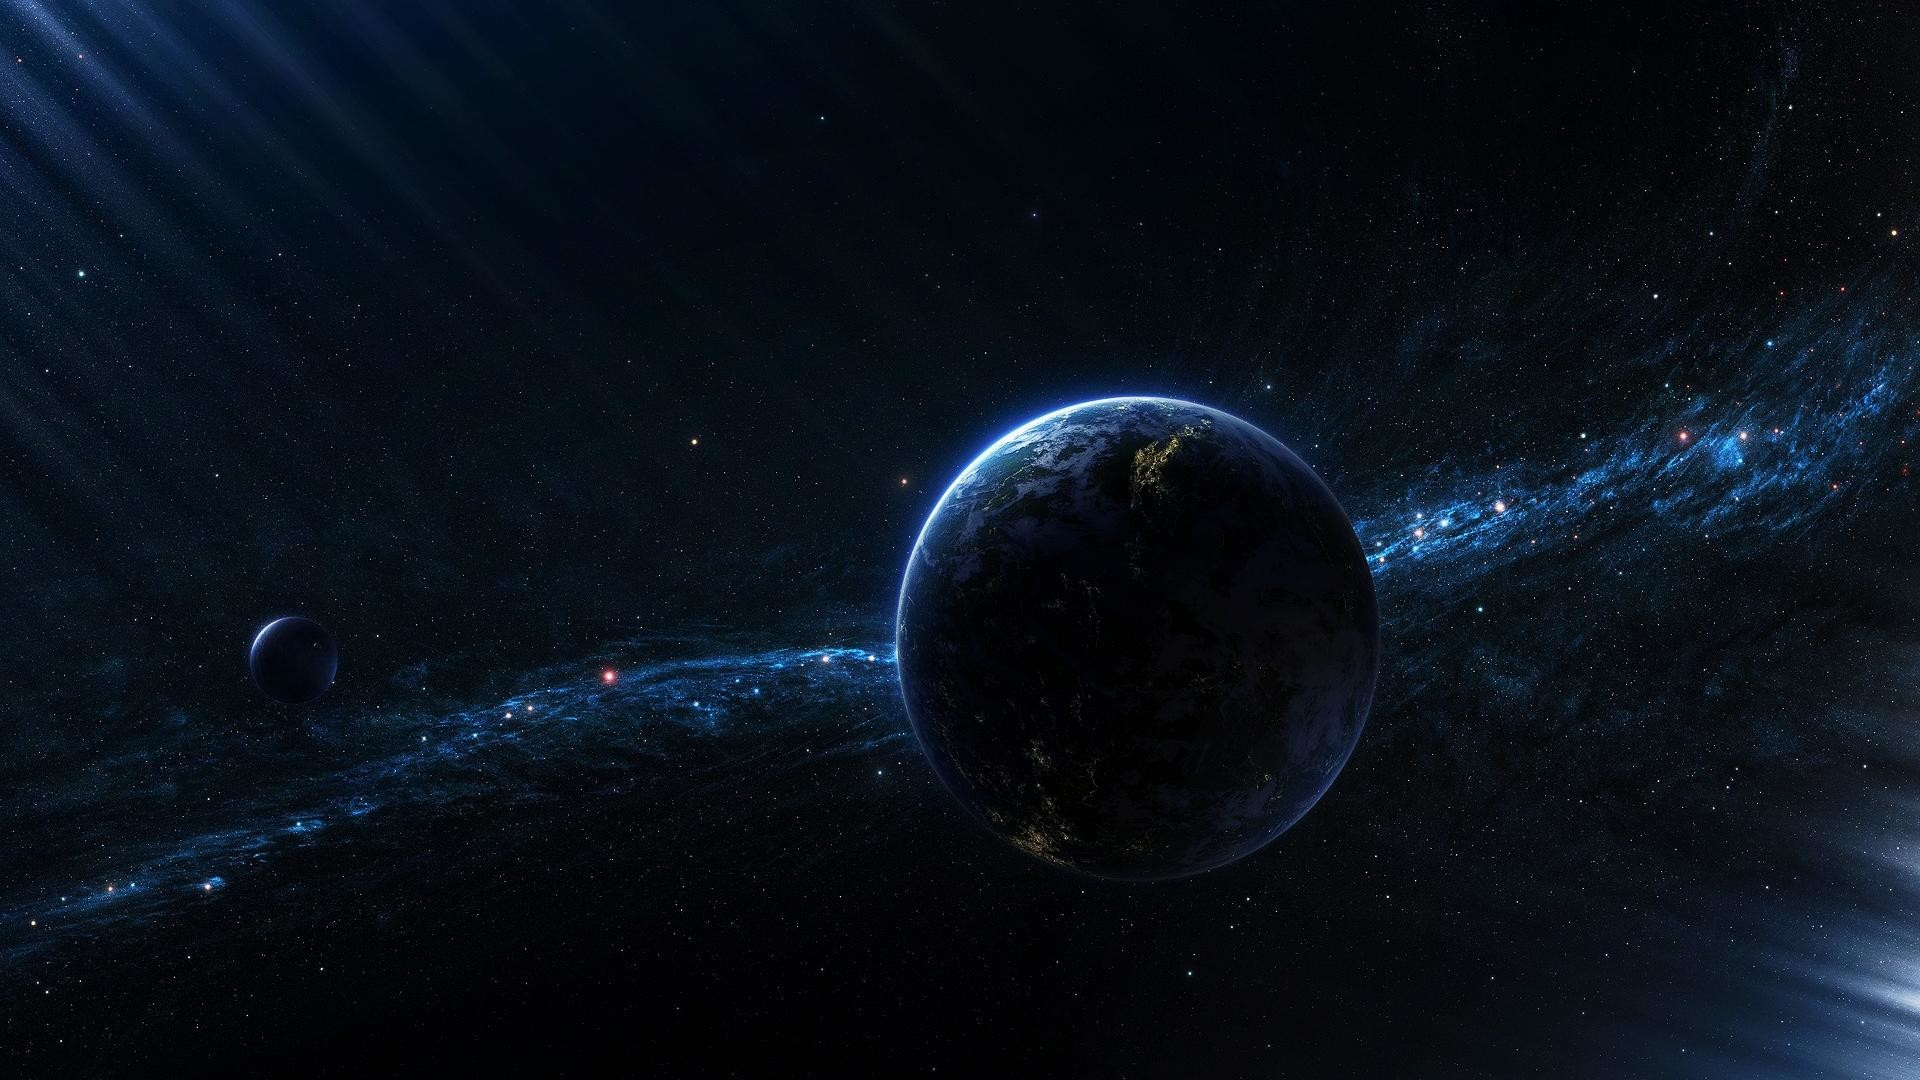 Space Photos wallpapers (84 Wallpapers)